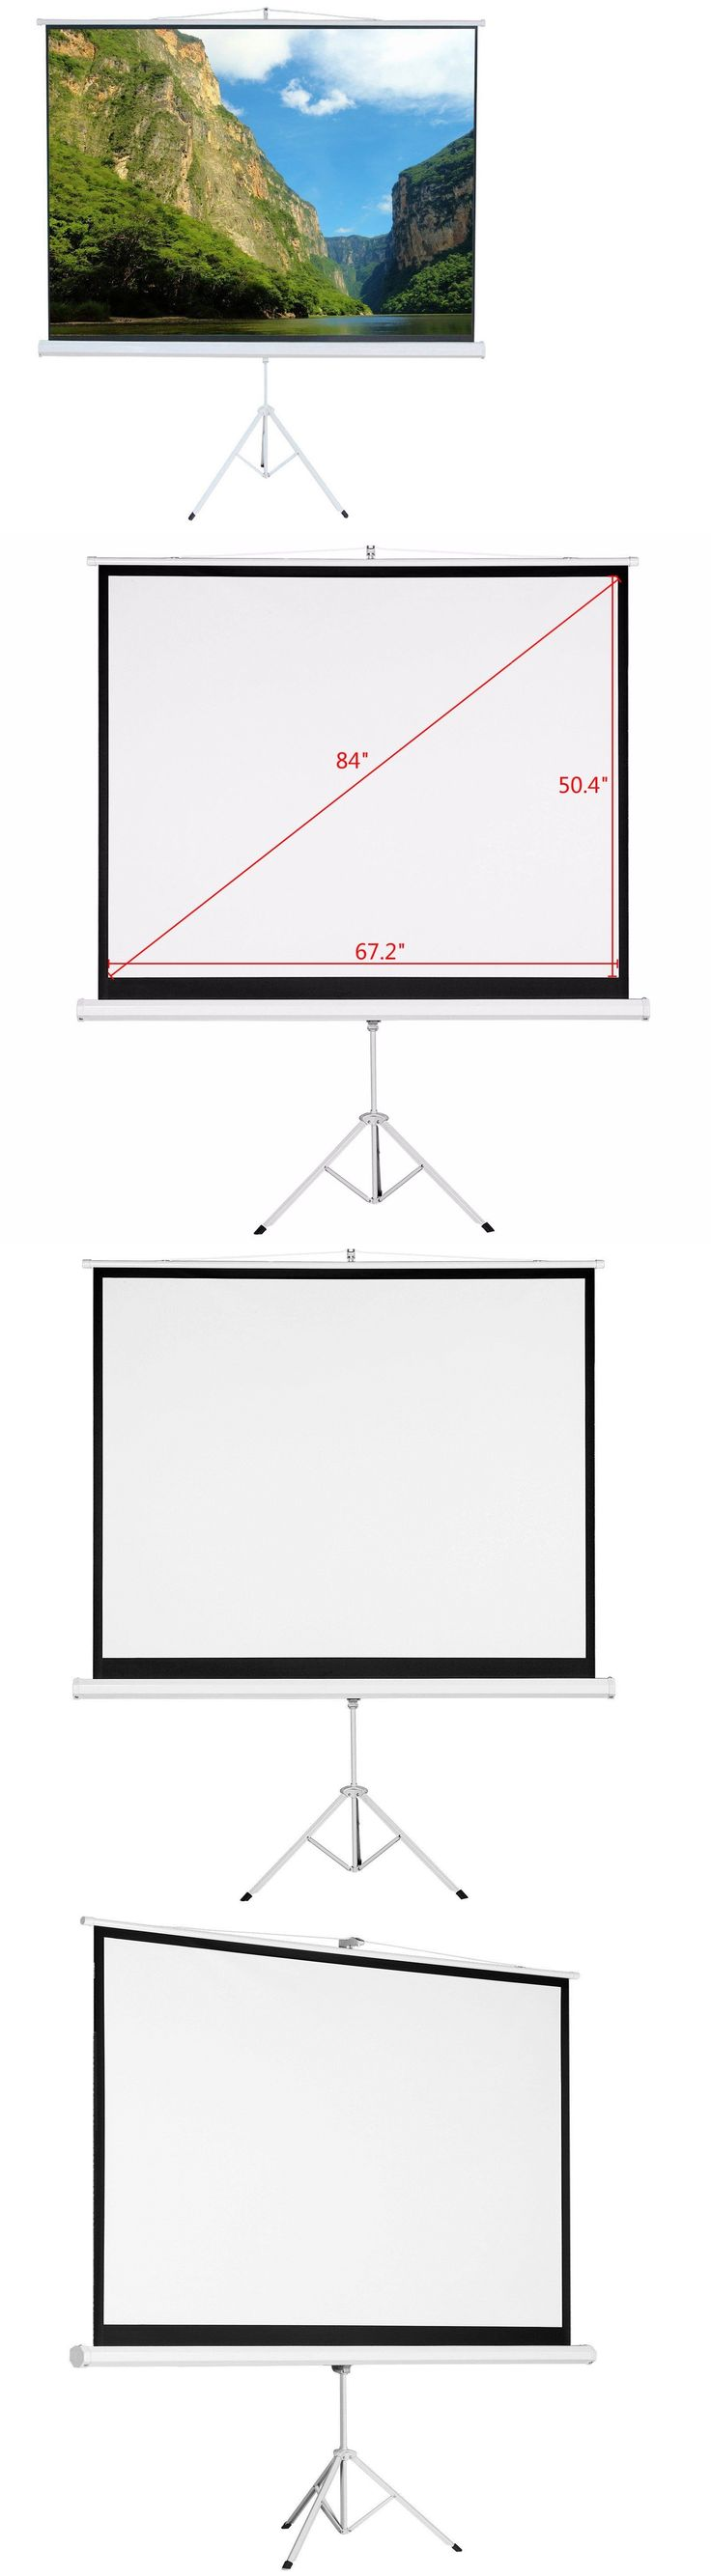 Projection Screens and Material: 84 4:3 Hd Foldable Tripod Stand Portable Projector Screen Projection Pull Up -> BUY IT NOW ONLY: $54.99 on eBay!